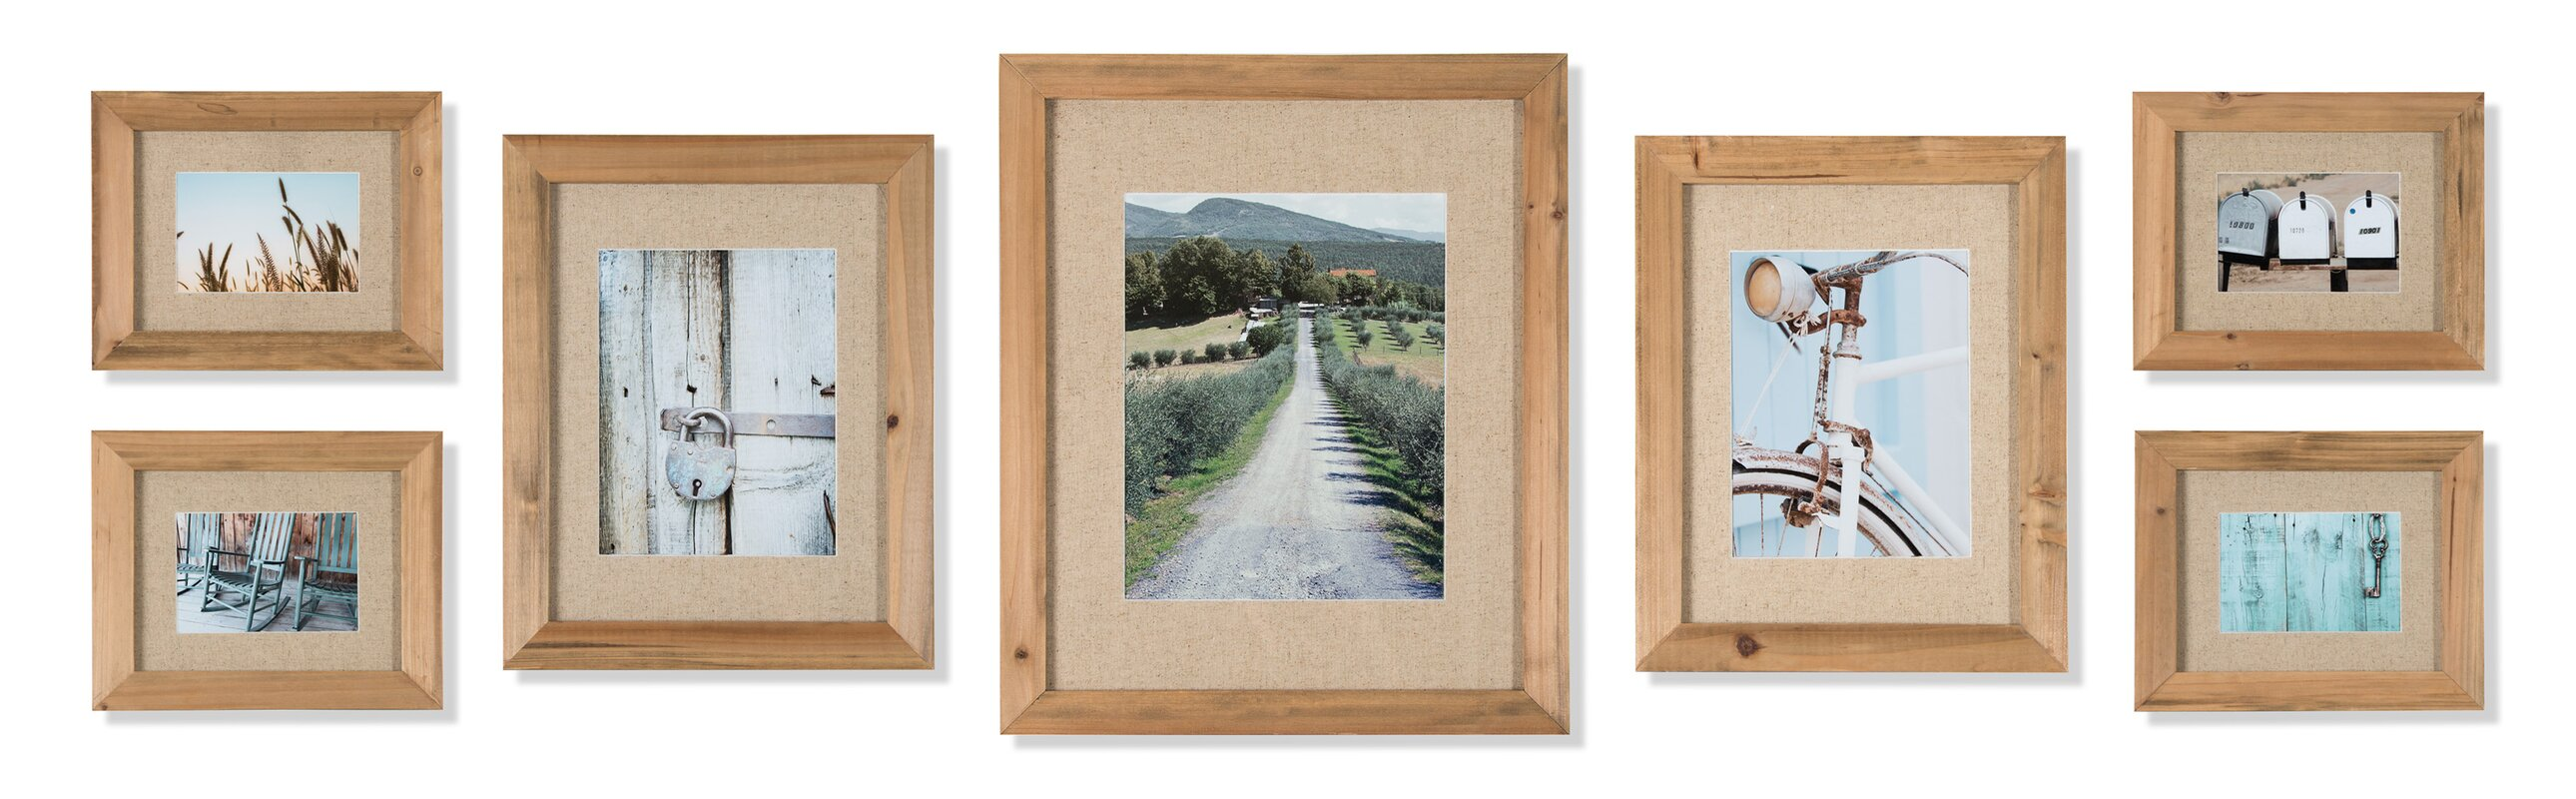 Sharleen 7 Piece Gallery Picture Frame Set Amp Reviews